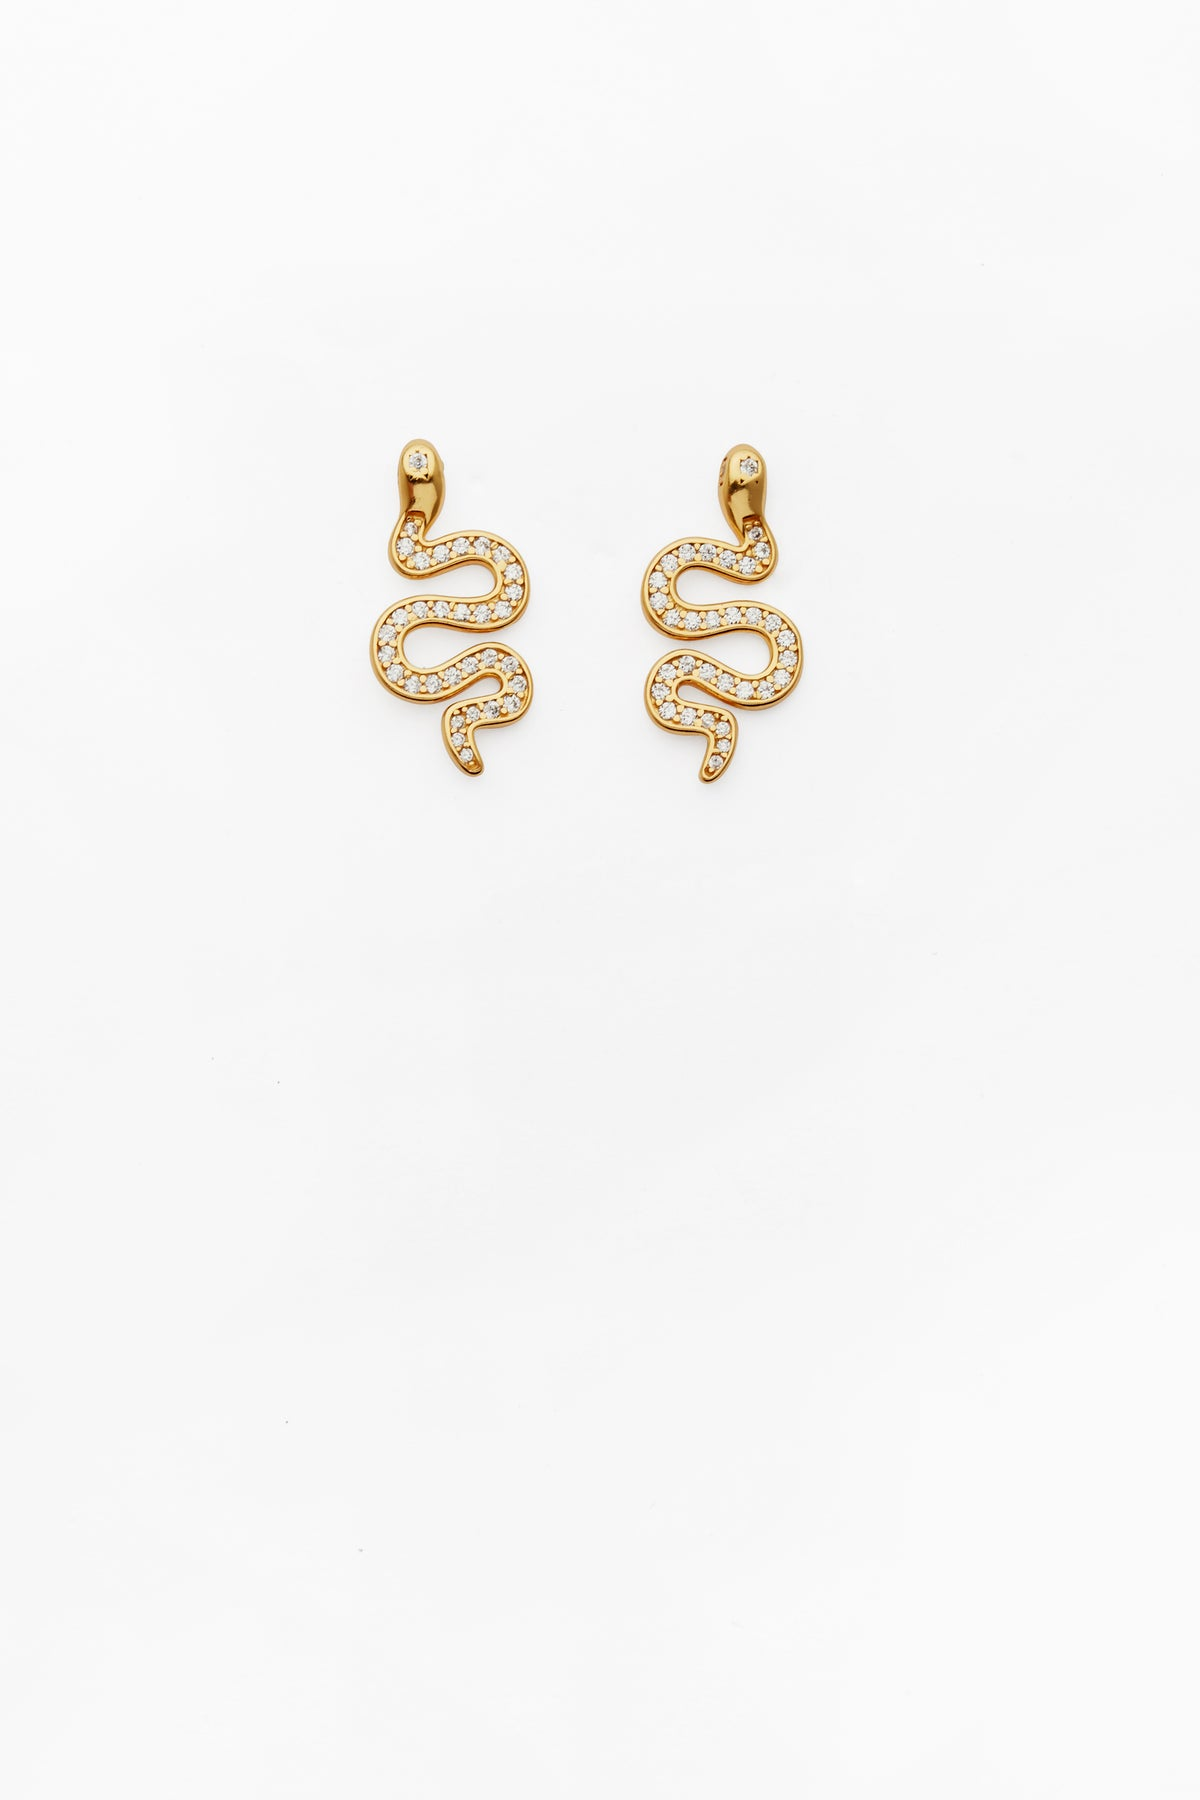 Reputation Earrings